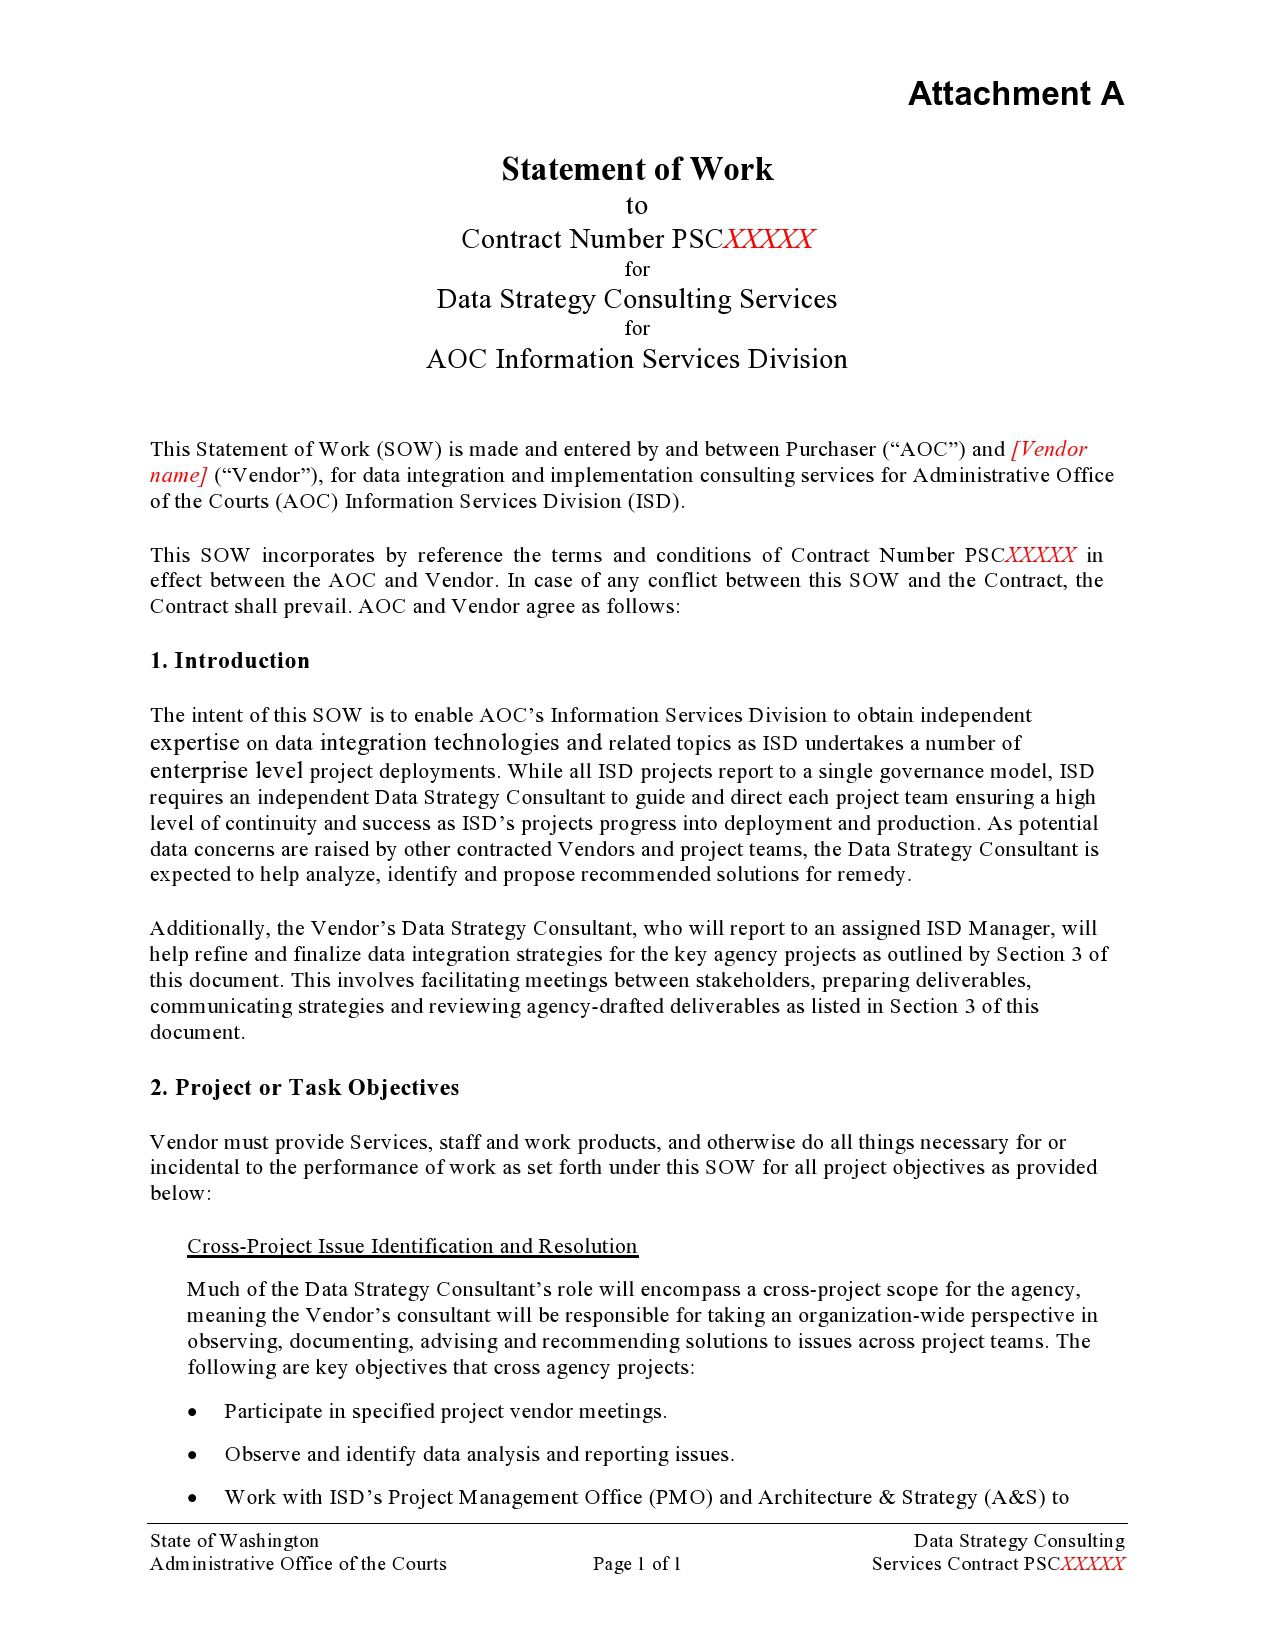 009 Impressive Sample Statement Of Work Consulting Service Highest Quality Full